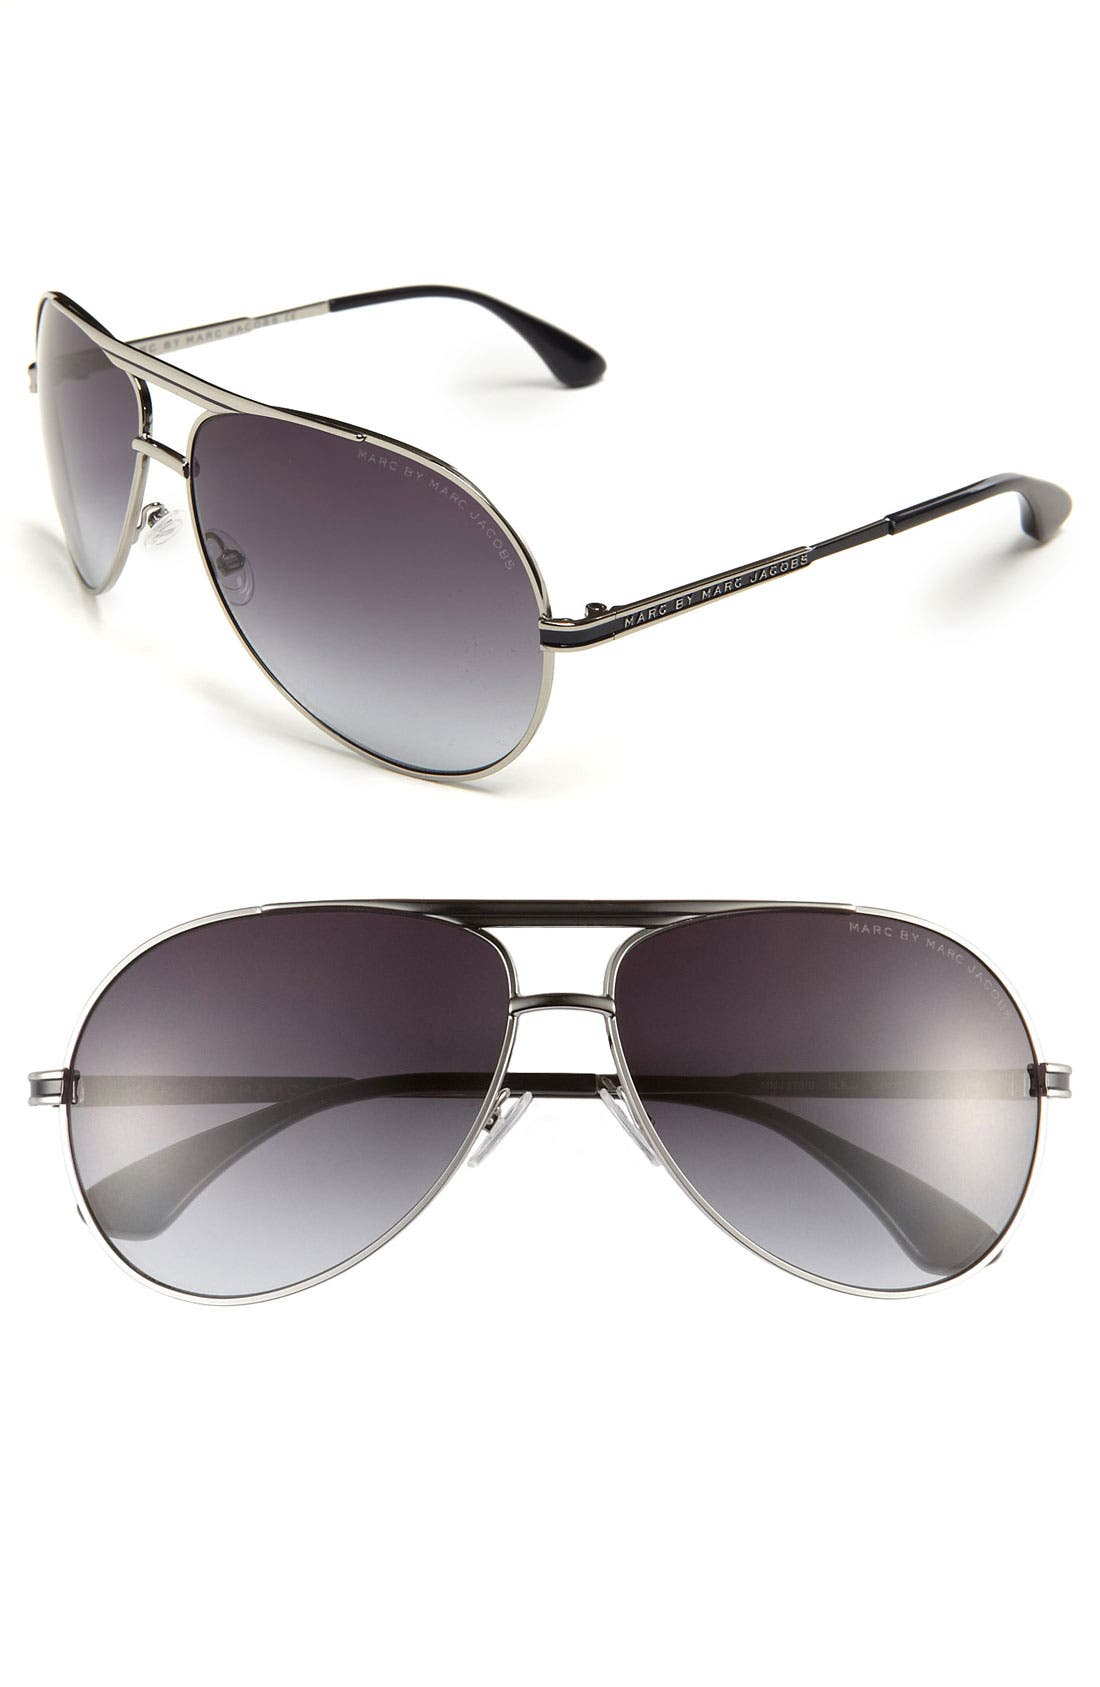 Main Image - MARC BY MARC JACOBS 65mm Aviator Sunglasses